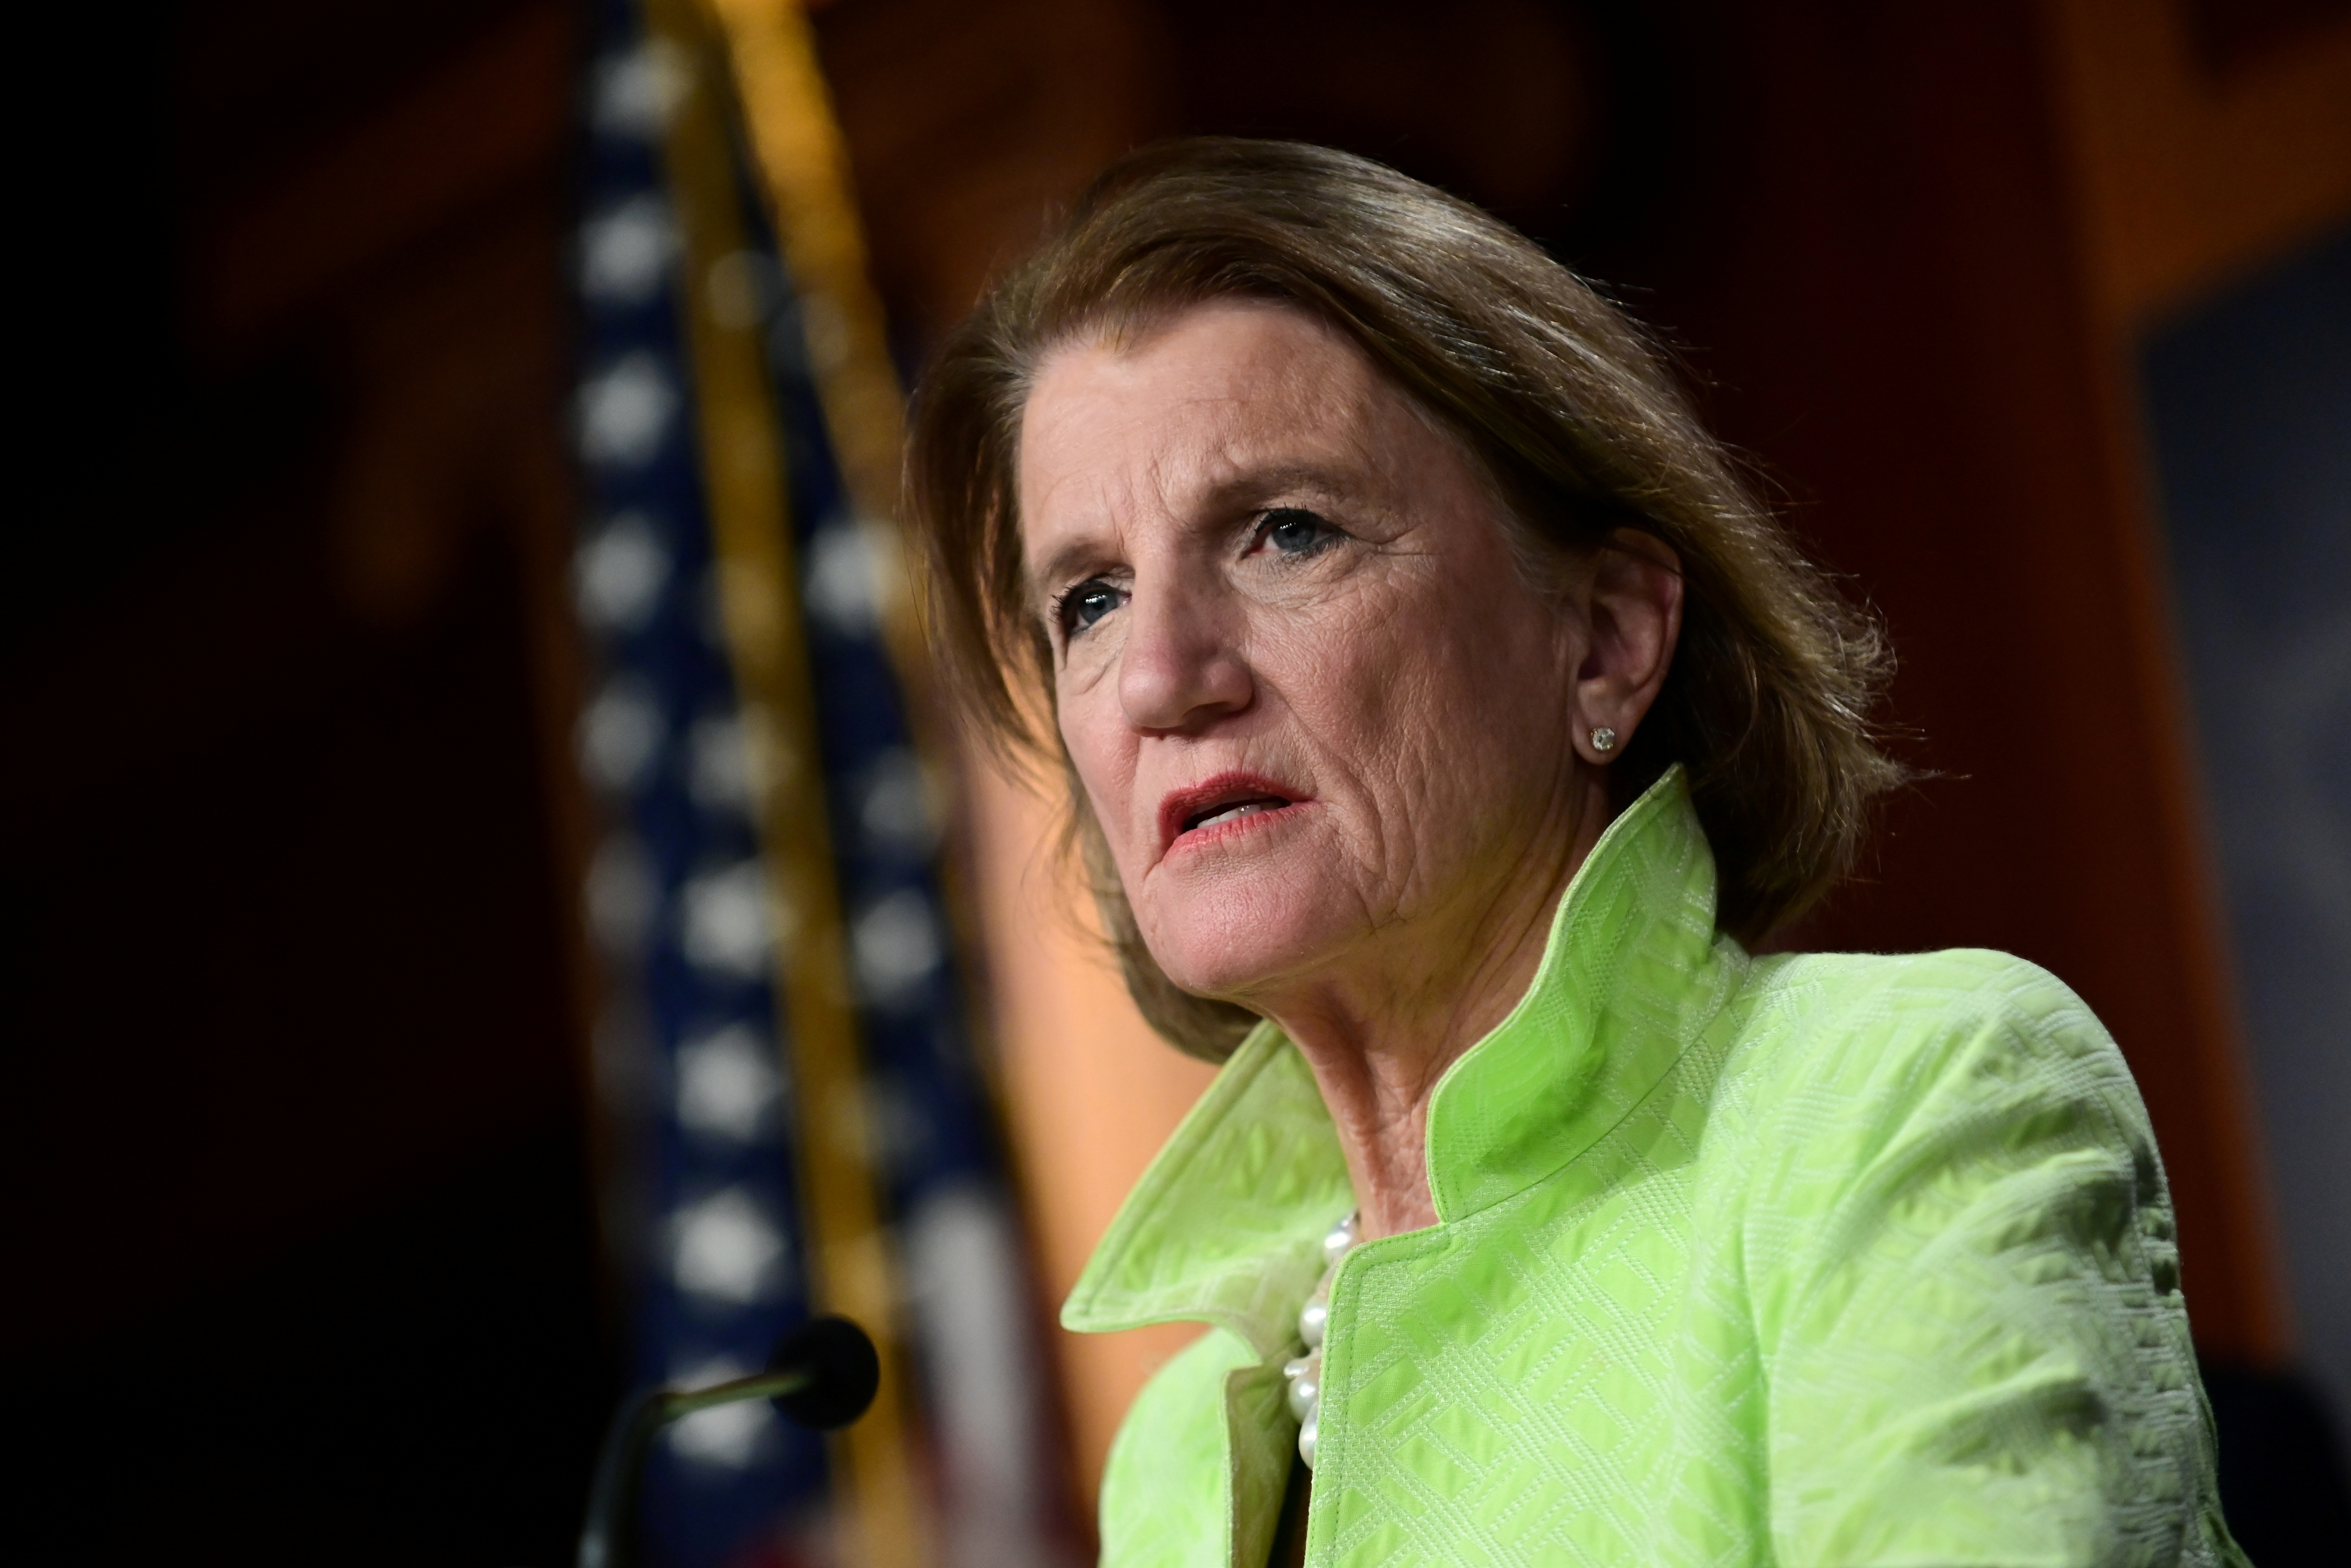 Shelley Capito (R-WV) looks on during a news conference to introduce the Republican infrastructure plan, at the U.S. Capitol in Washington, U.S., April 22, 2021. REUTERS/Erin Scott